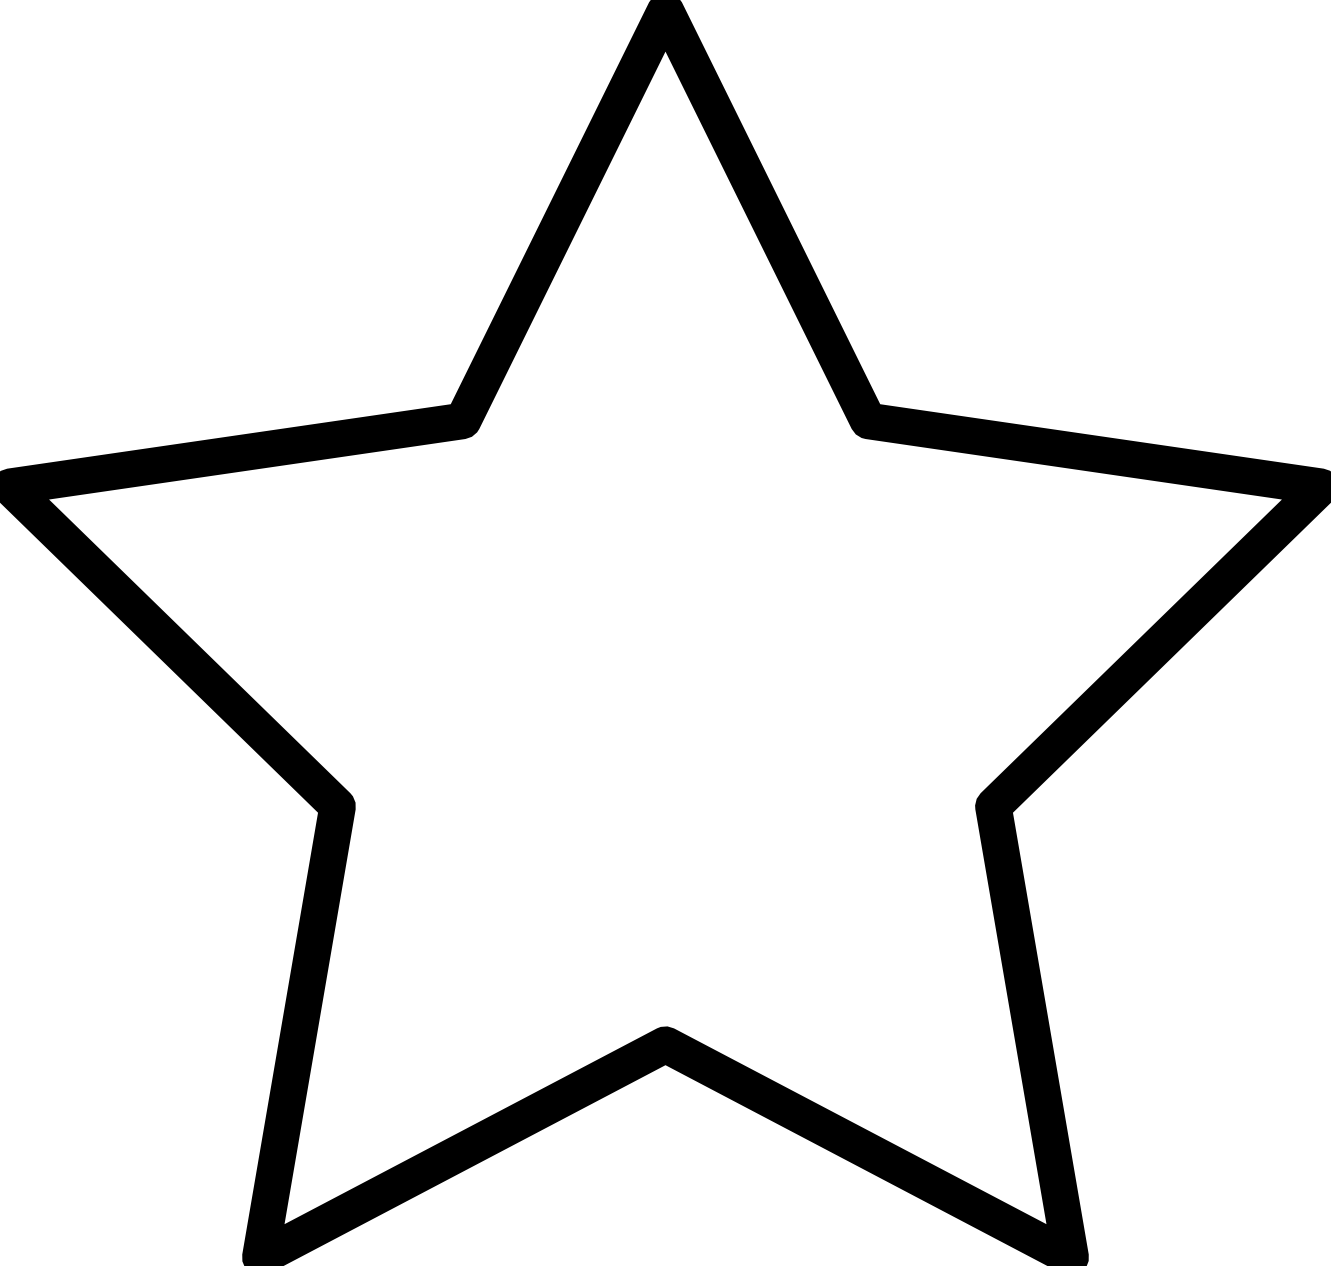 Black And White Star Clip Art - Clipart library - PNG Star Black And White